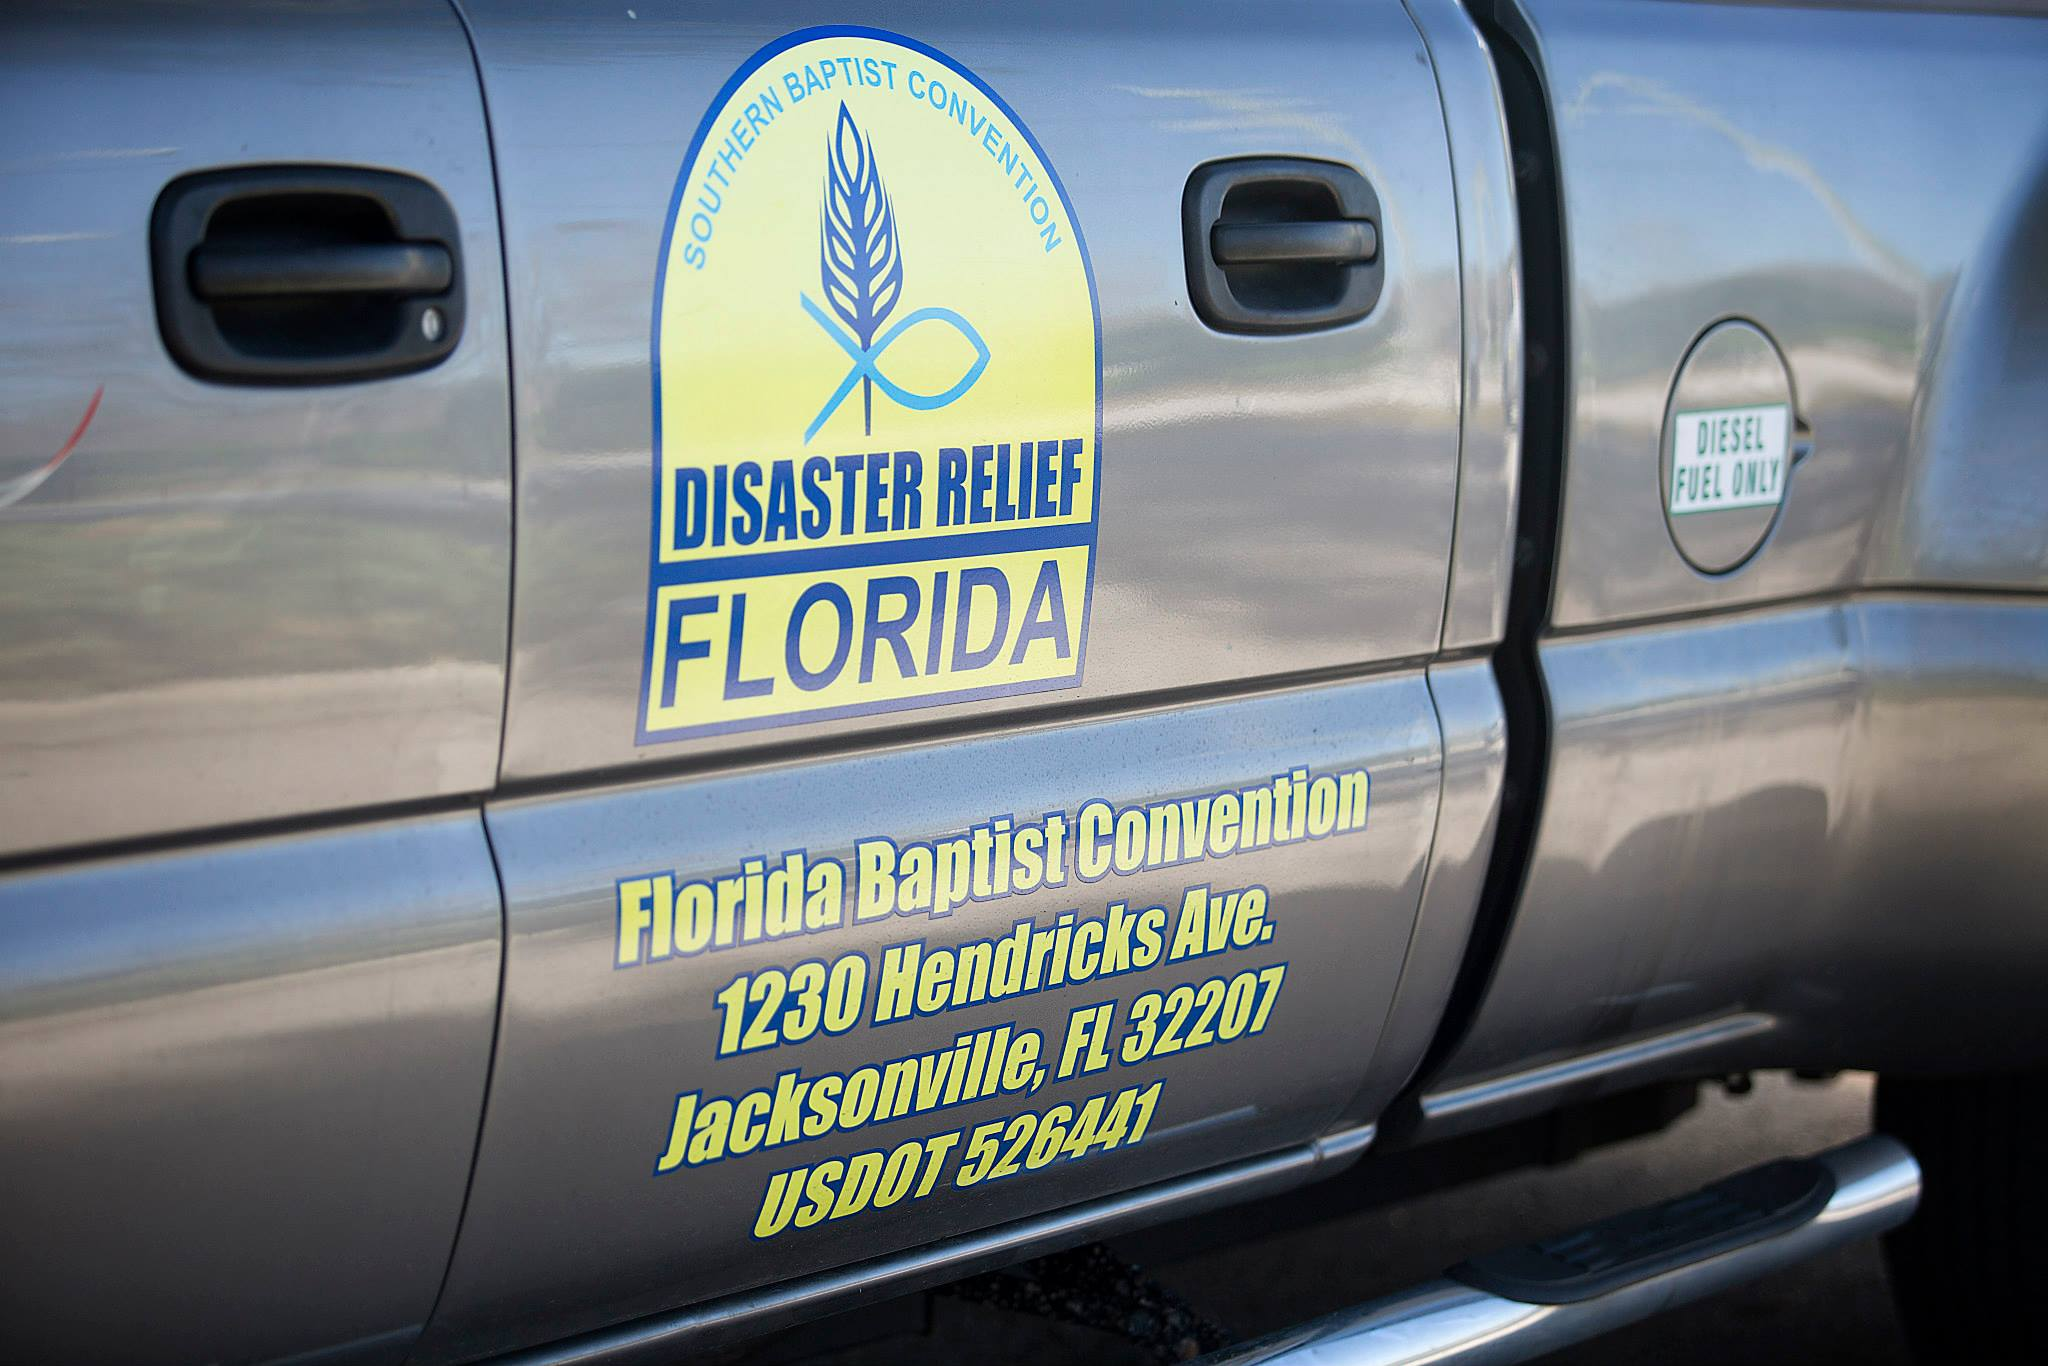 Florida Baptist Convention, Churches Helping Churches, Disaster Relief, Disaster Relief Ministry - Florida Baptist Convention giving aid to all people in time of crisis